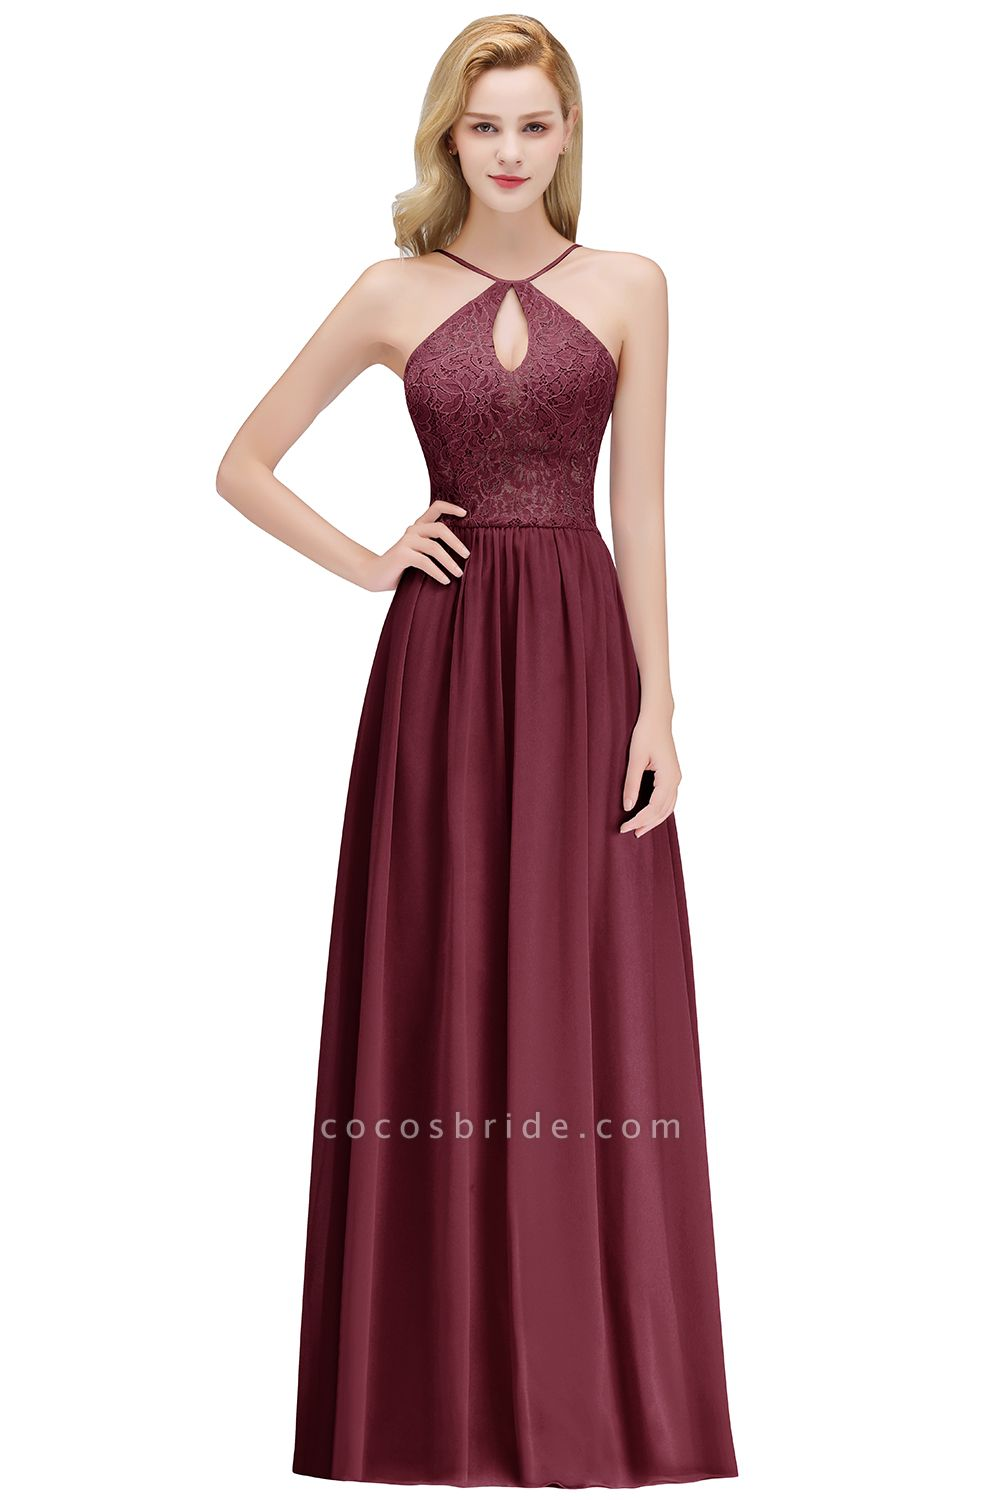 Keyhole Neckline Lace A-line Long Spaghetti Bridesmaid Dress